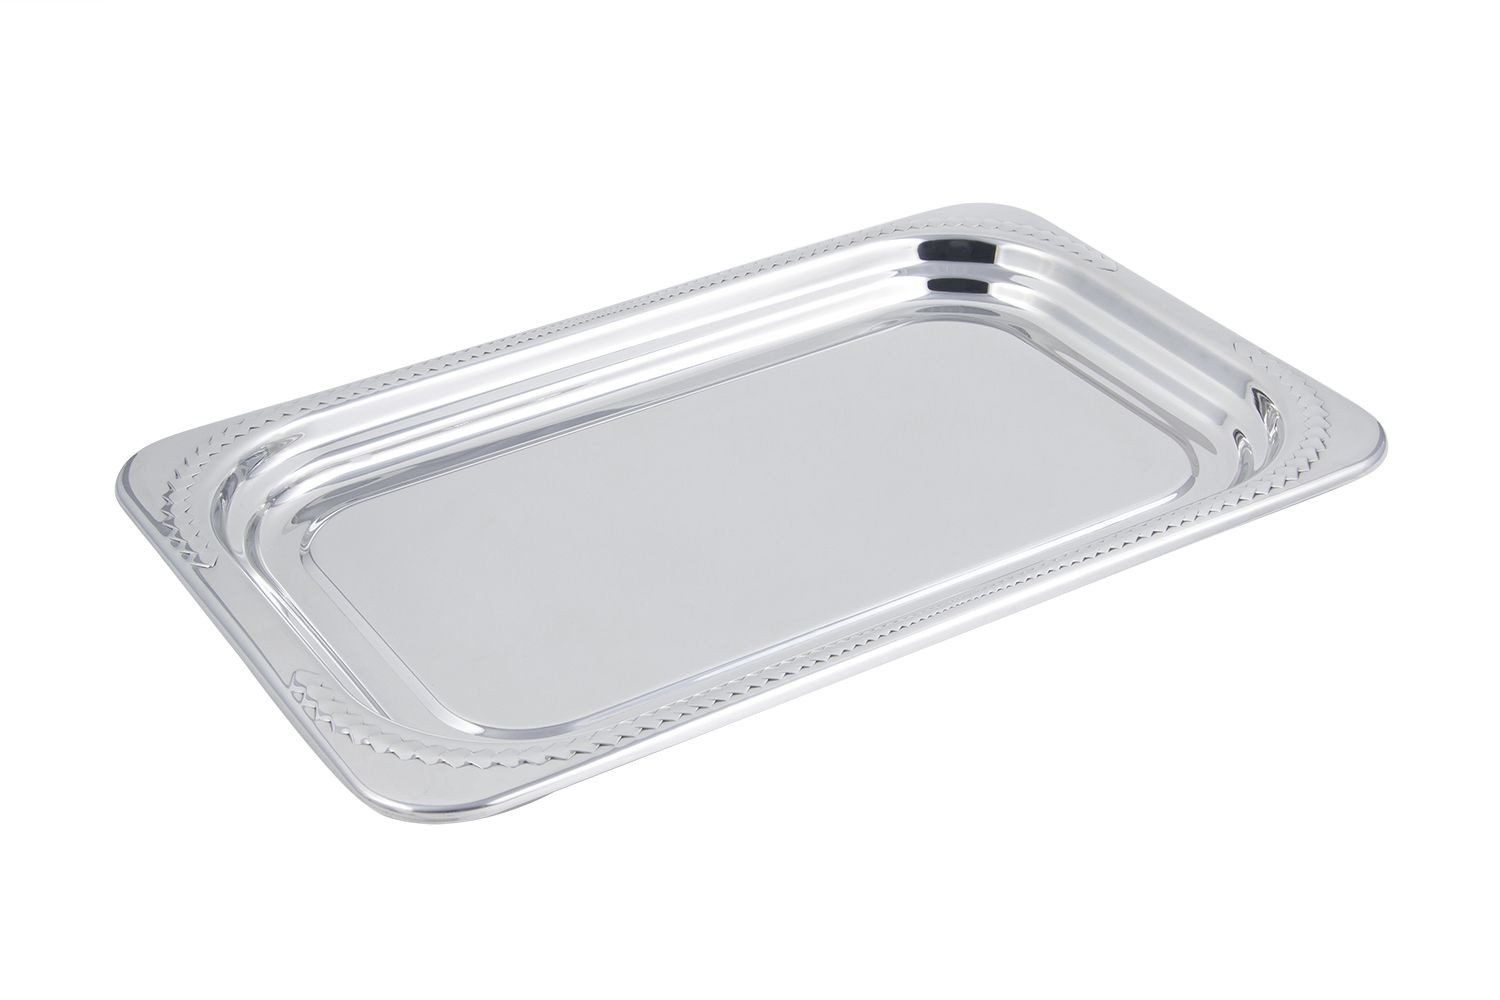 Bon Chef 5407 Laurel Design Rectangular Full-Size Food Pan, 4 1/2 Qt.